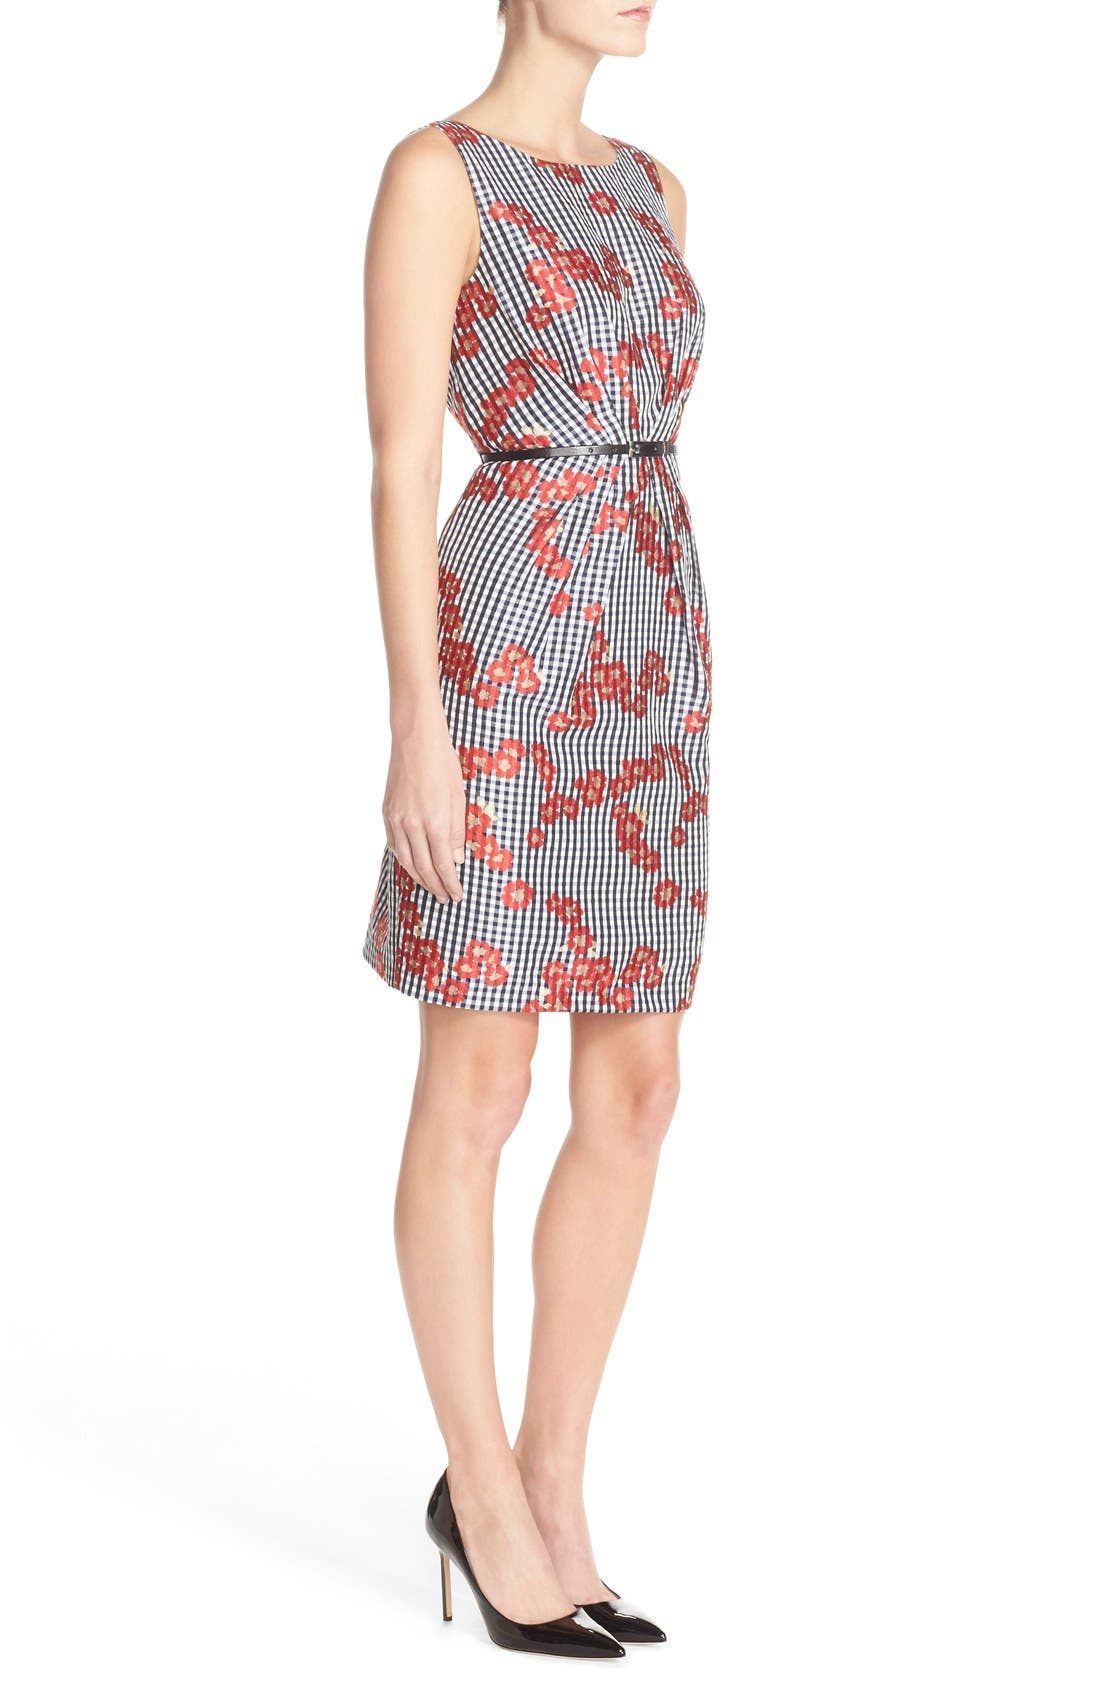 Alternate Image 3  - Adrianna Papell Floral & Gingham Jacquard Sheath Dress (Regular & Petite)